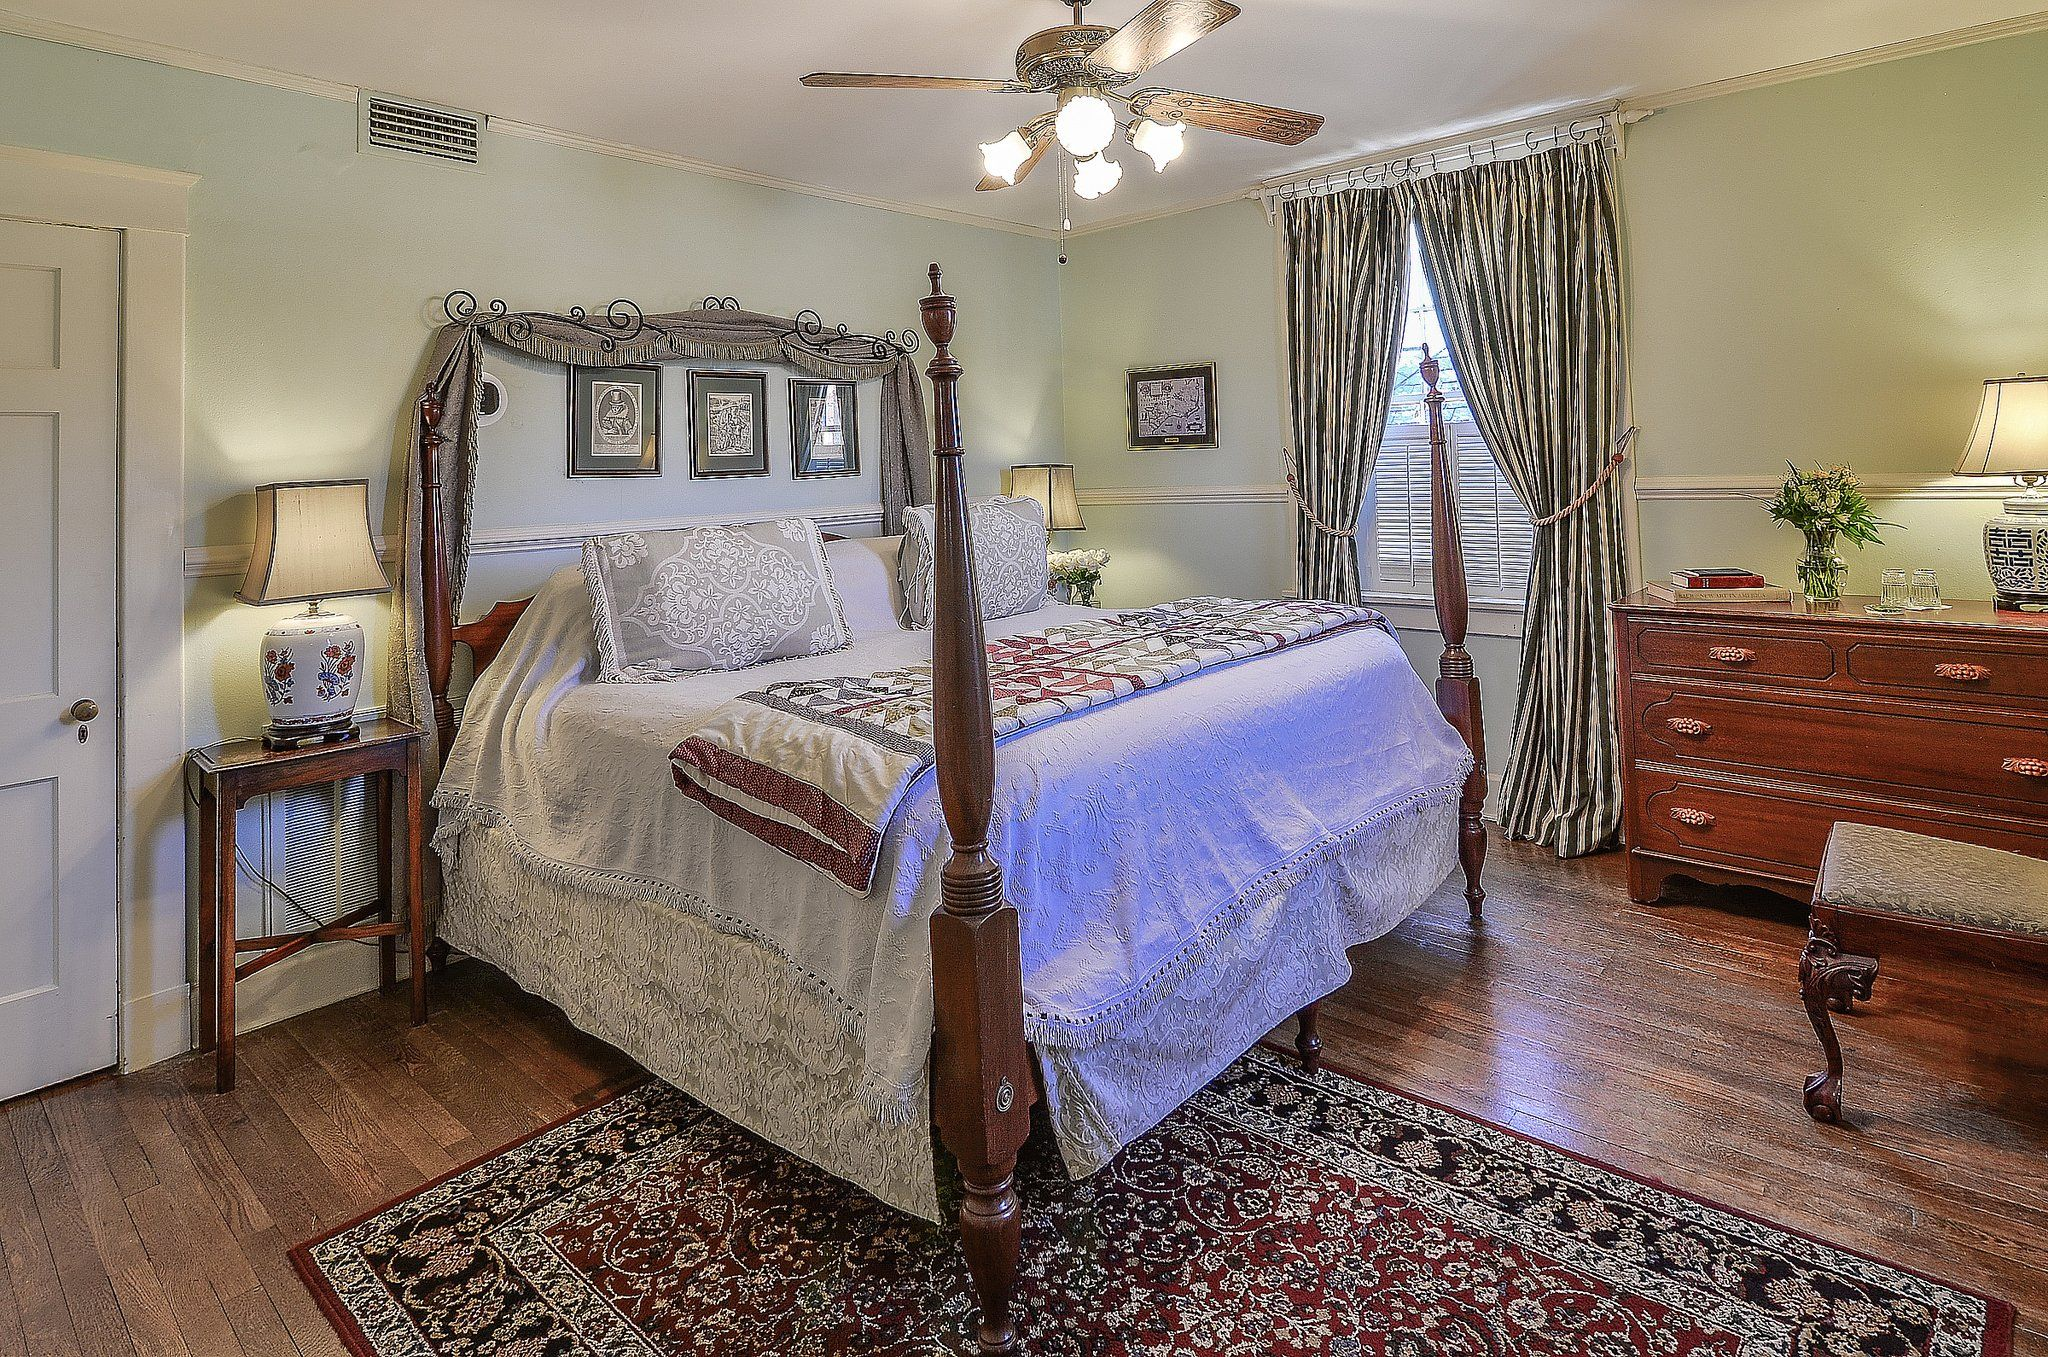 Tour the Property Bed and breakfast, Williamsburg, Cedar